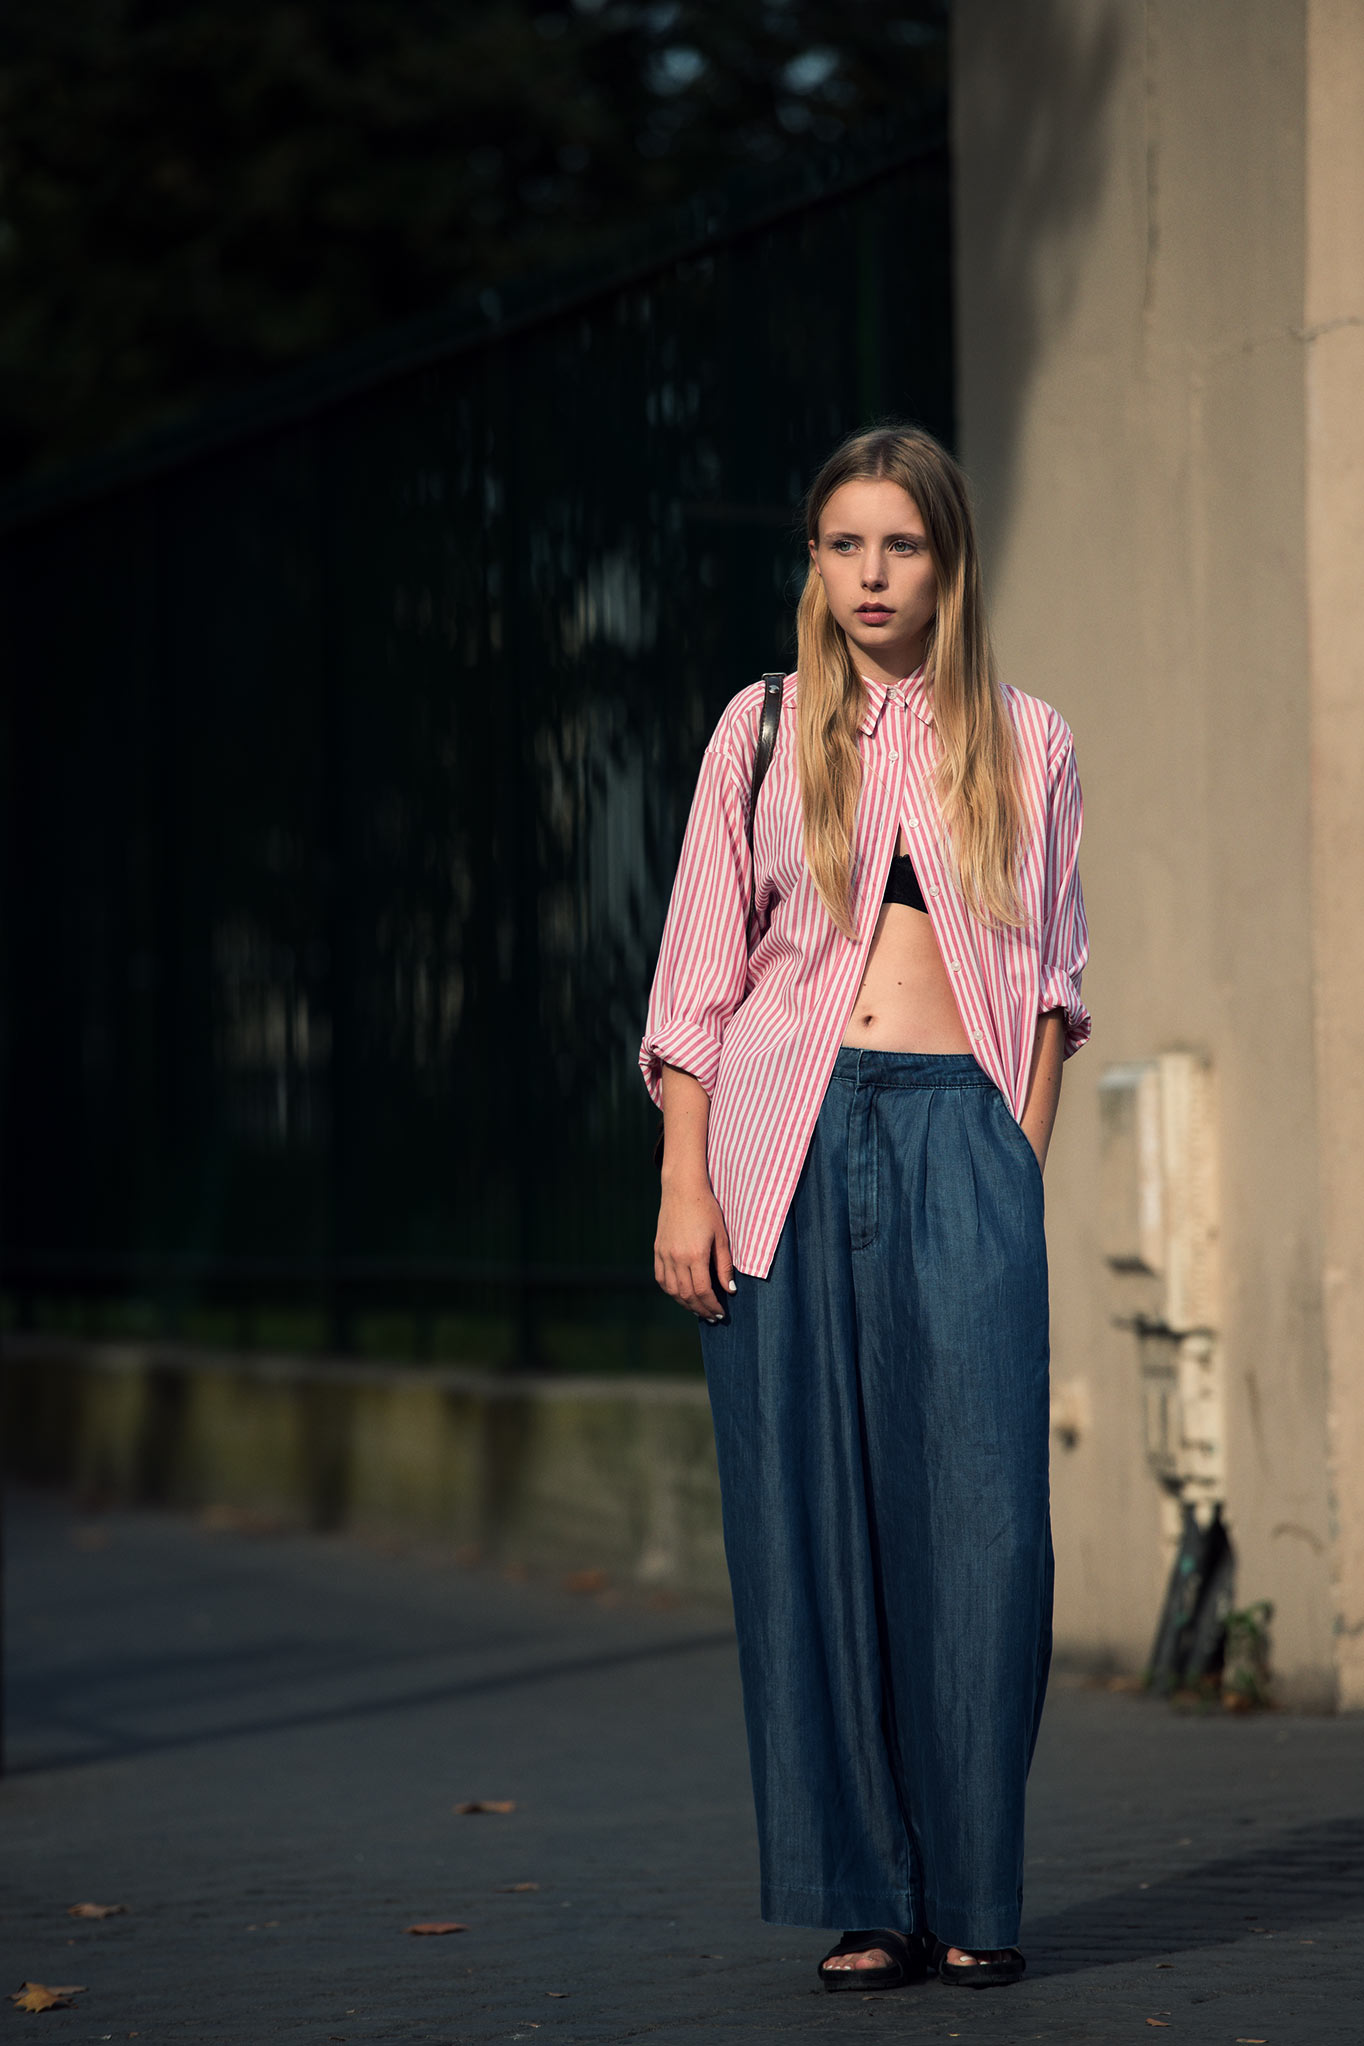 Marie Myrhøj Jensen at Paris Fashion Week Spring/Summer 2015